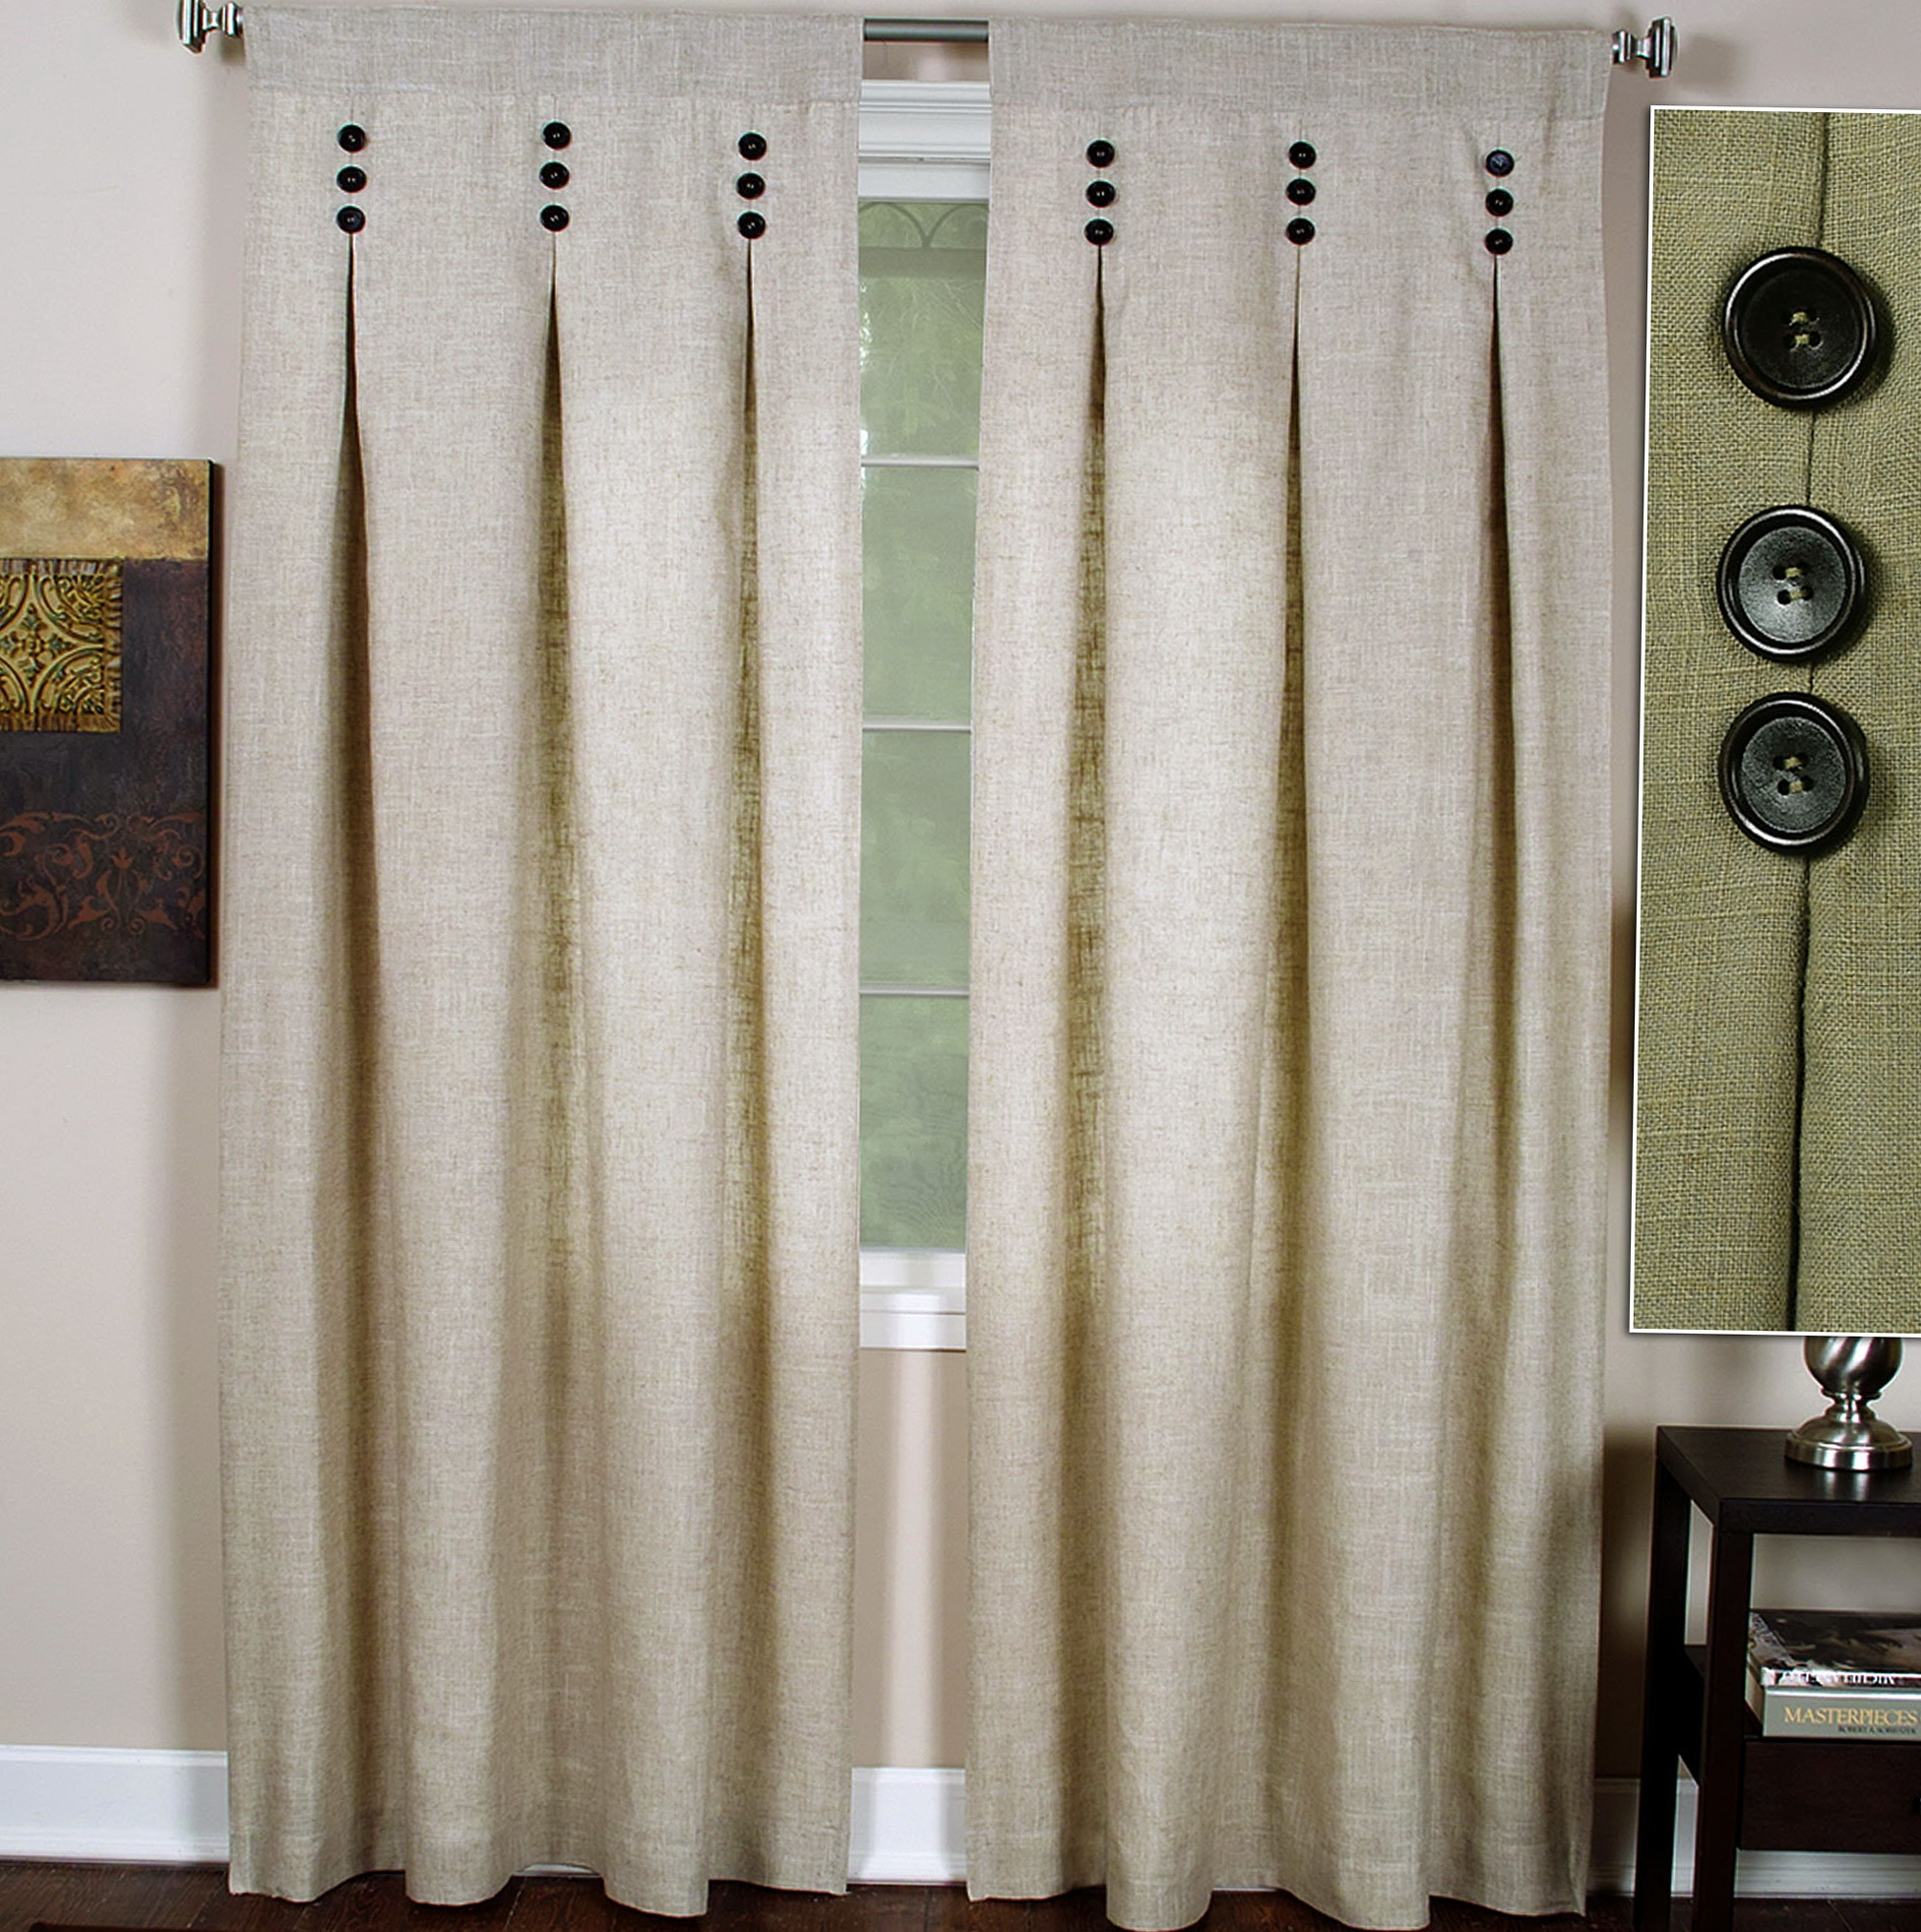 pleated pinch com retardant thecurtainshop sheers curtains fire cornwall drapery